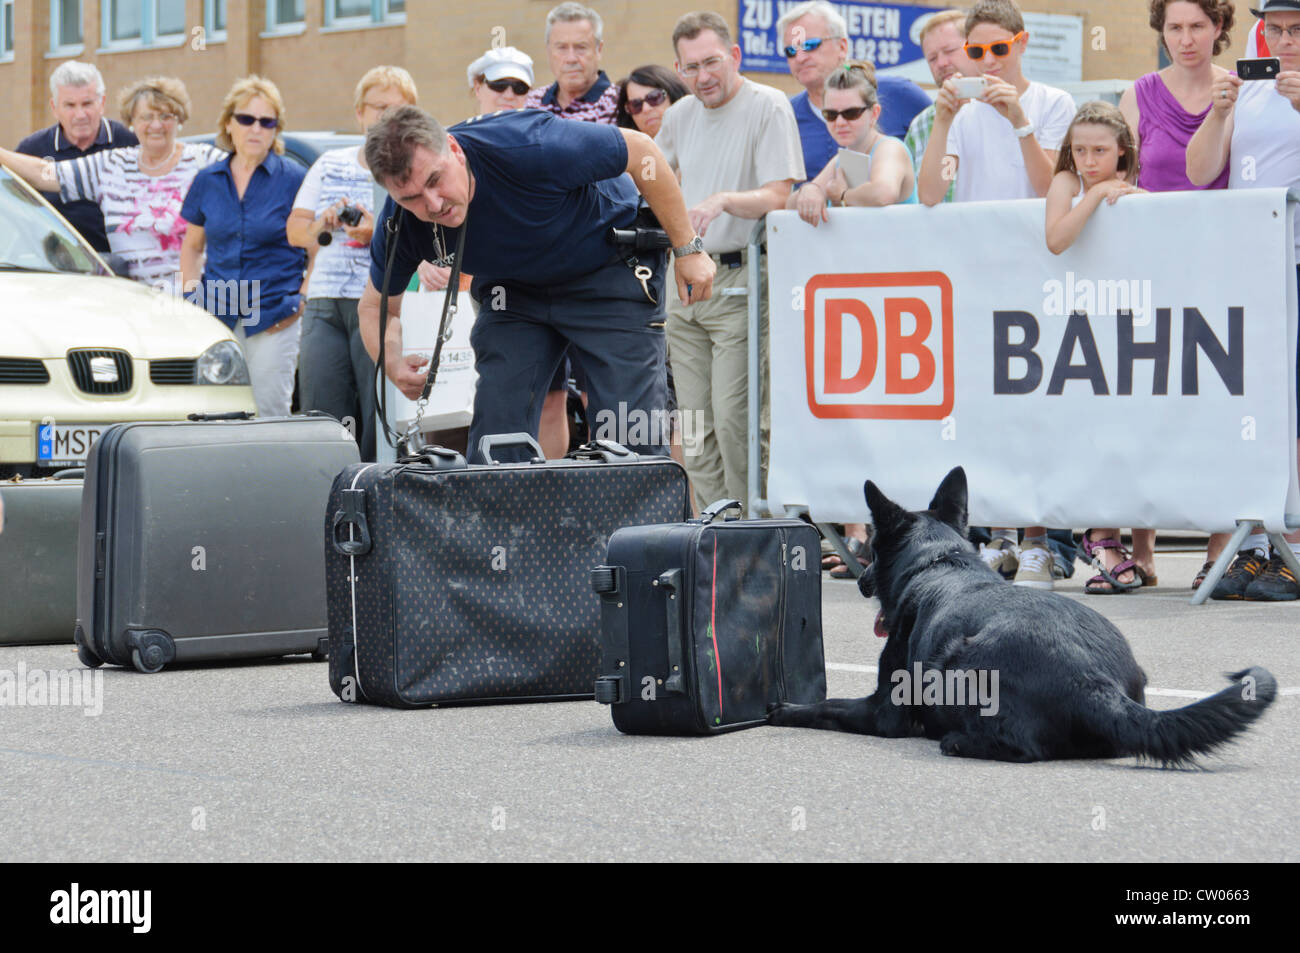 Drug sniffer dog from a German police K-9 drug unit searching suitcases for illegal drugs watched by spectators, - Stock Image